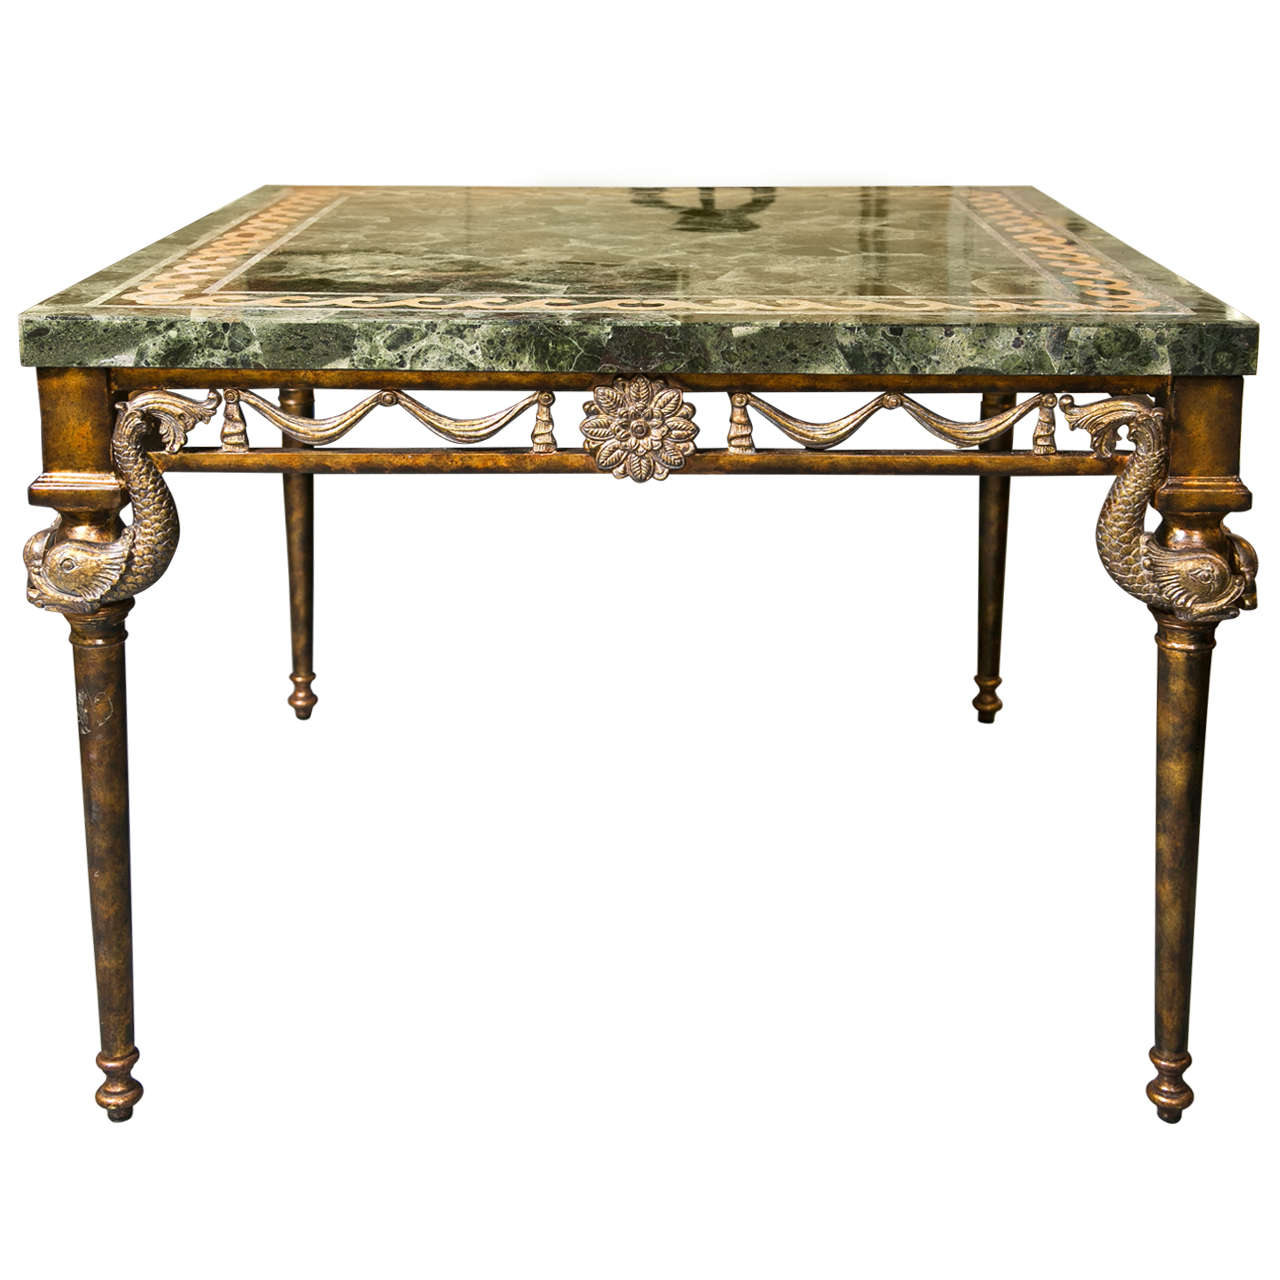 Marble top center table by maitland smith at 1stdibs marble top center table by maitland smith for sale gumiabroncs Choice Image